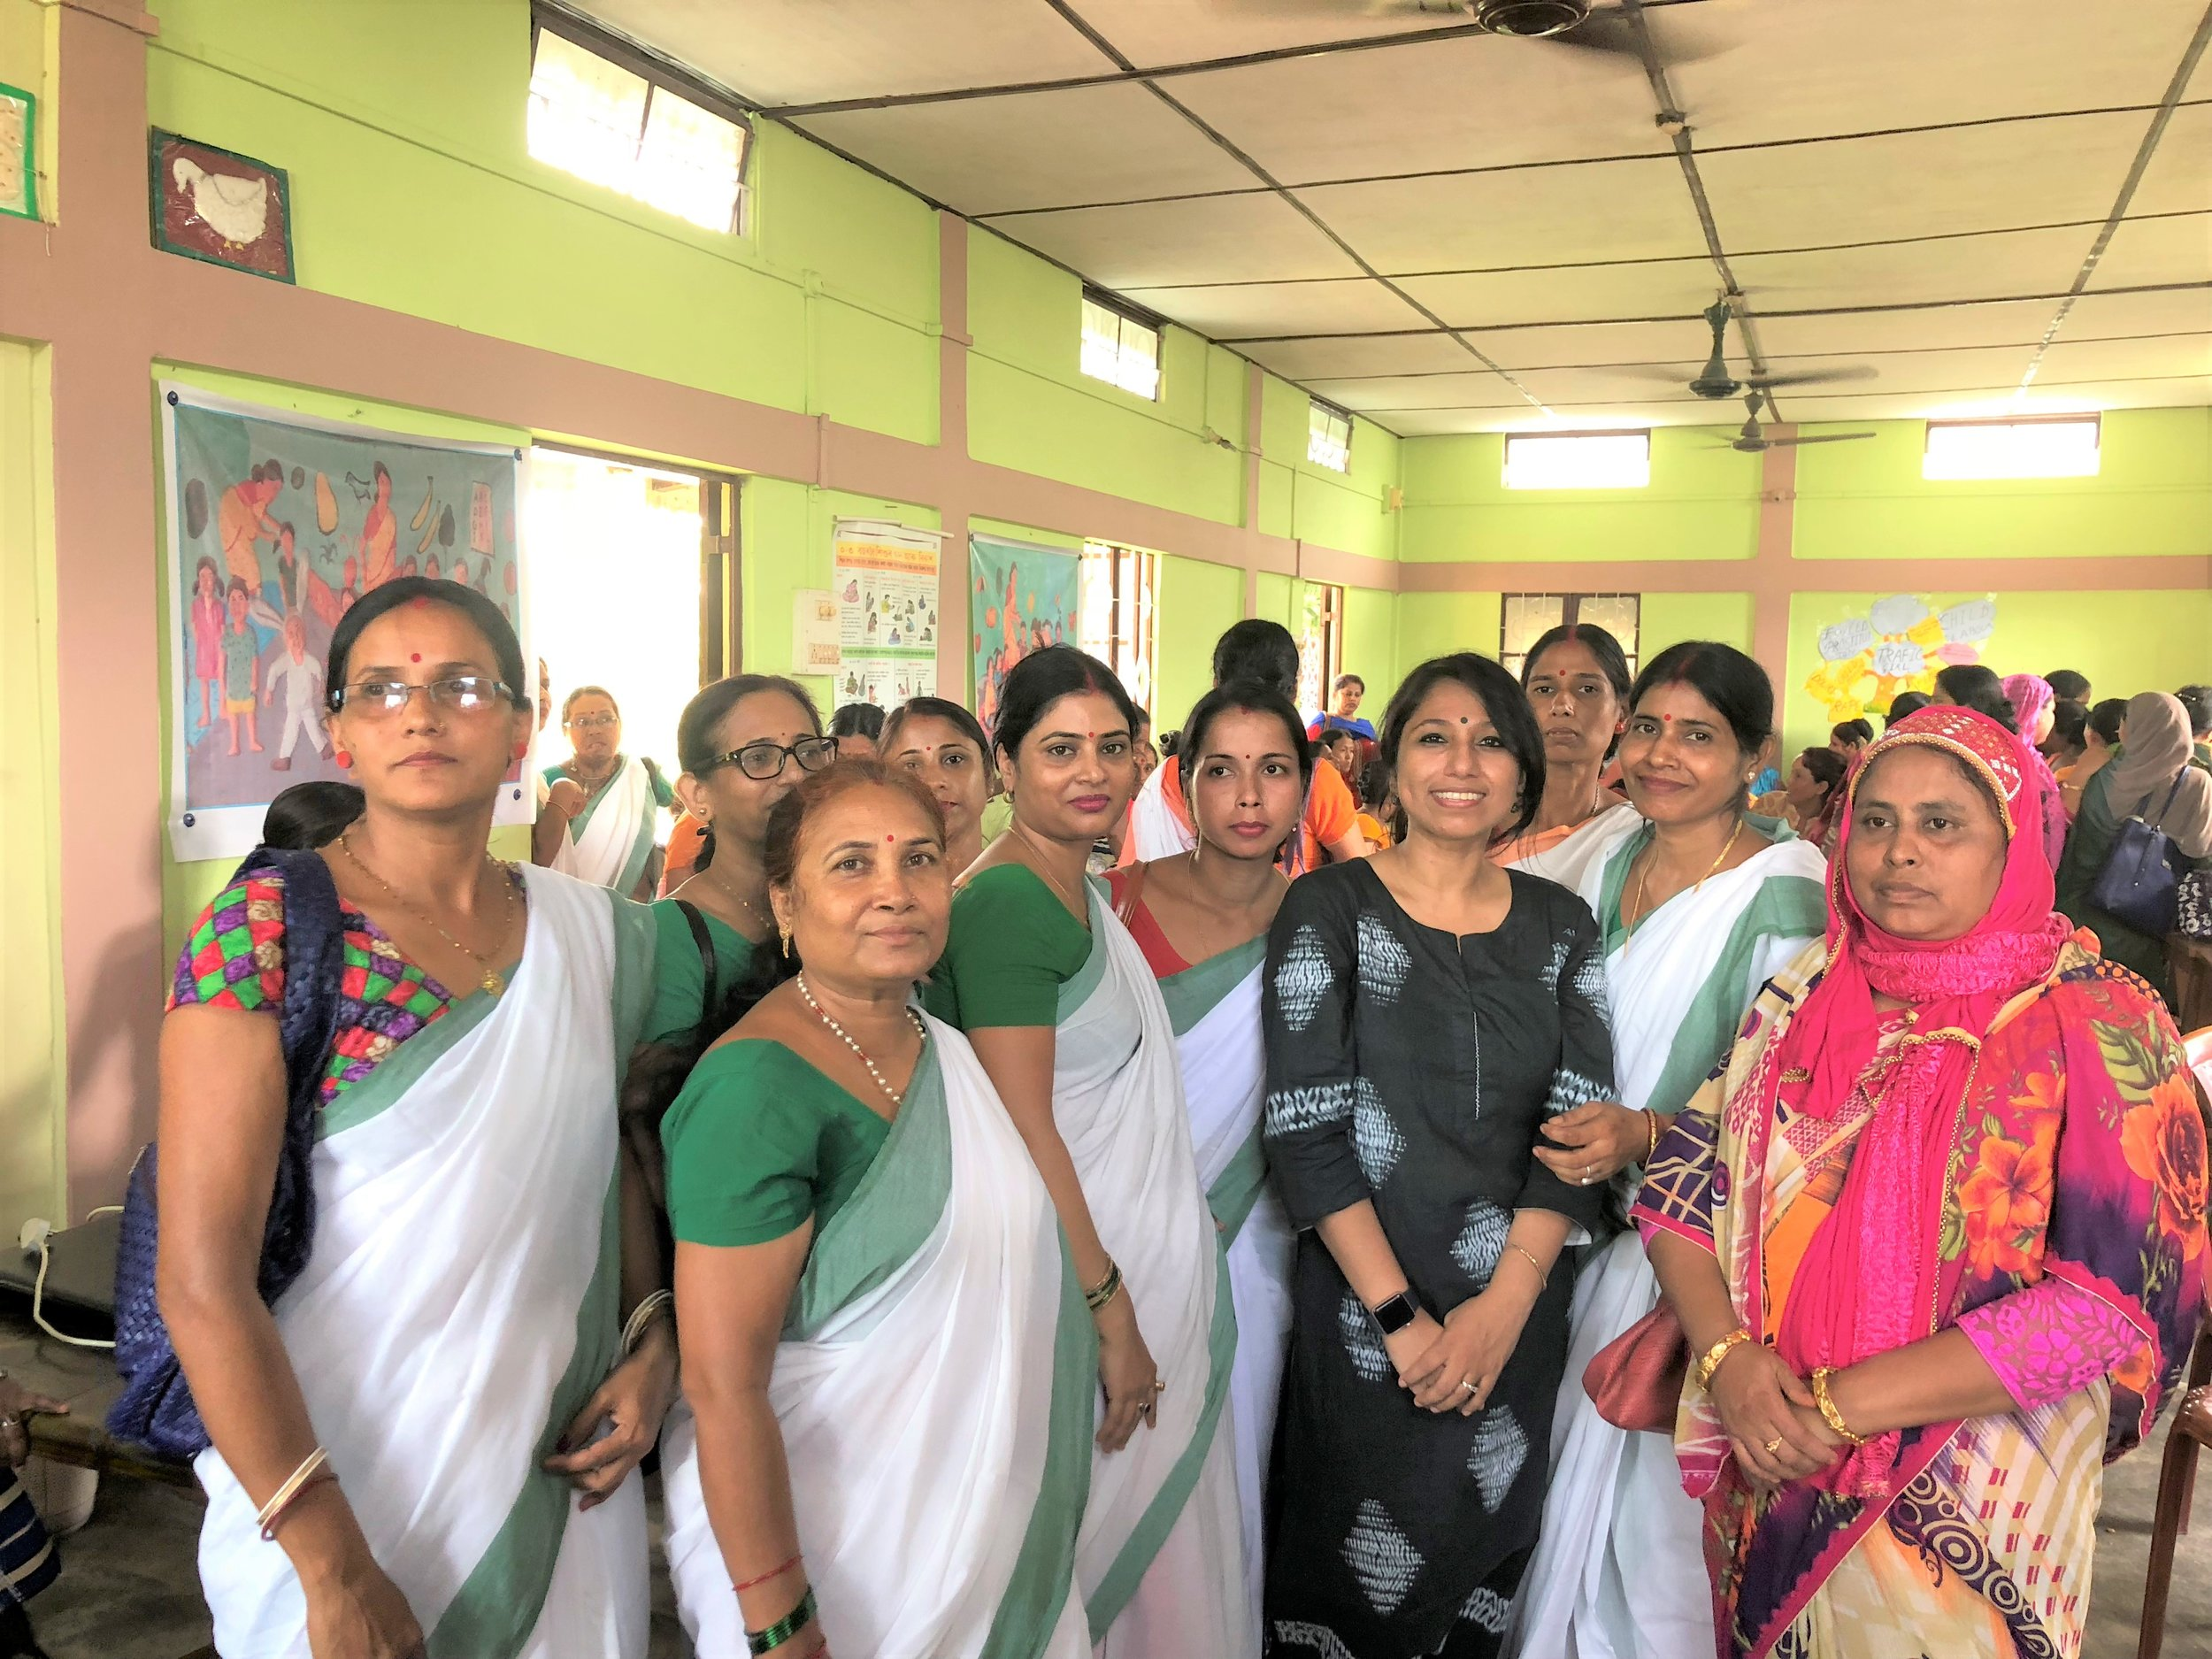 I had enormous rounds of interactions with Anganwadi workers and how they can collectively come together to support Breast Cancer awareness & explain Breast self examination since the Anganwadi workers have direct outreach to the rural sectors – mothers who bring their children to them, women undertaking antenatal care, and other women from various divisions. They have a great opportunity to take the message forward (I will guide them through & through) to the rural India.  To note, many women came forward with issues about Breast health, they themselves suffering or their families going through the same but not opening up or visiting doctors - they were not aware that lumps, discharges were signs & may be Breast cancer & could cause death. An immensely rewarding session, with many women speaking up about their concerns after my presentation.